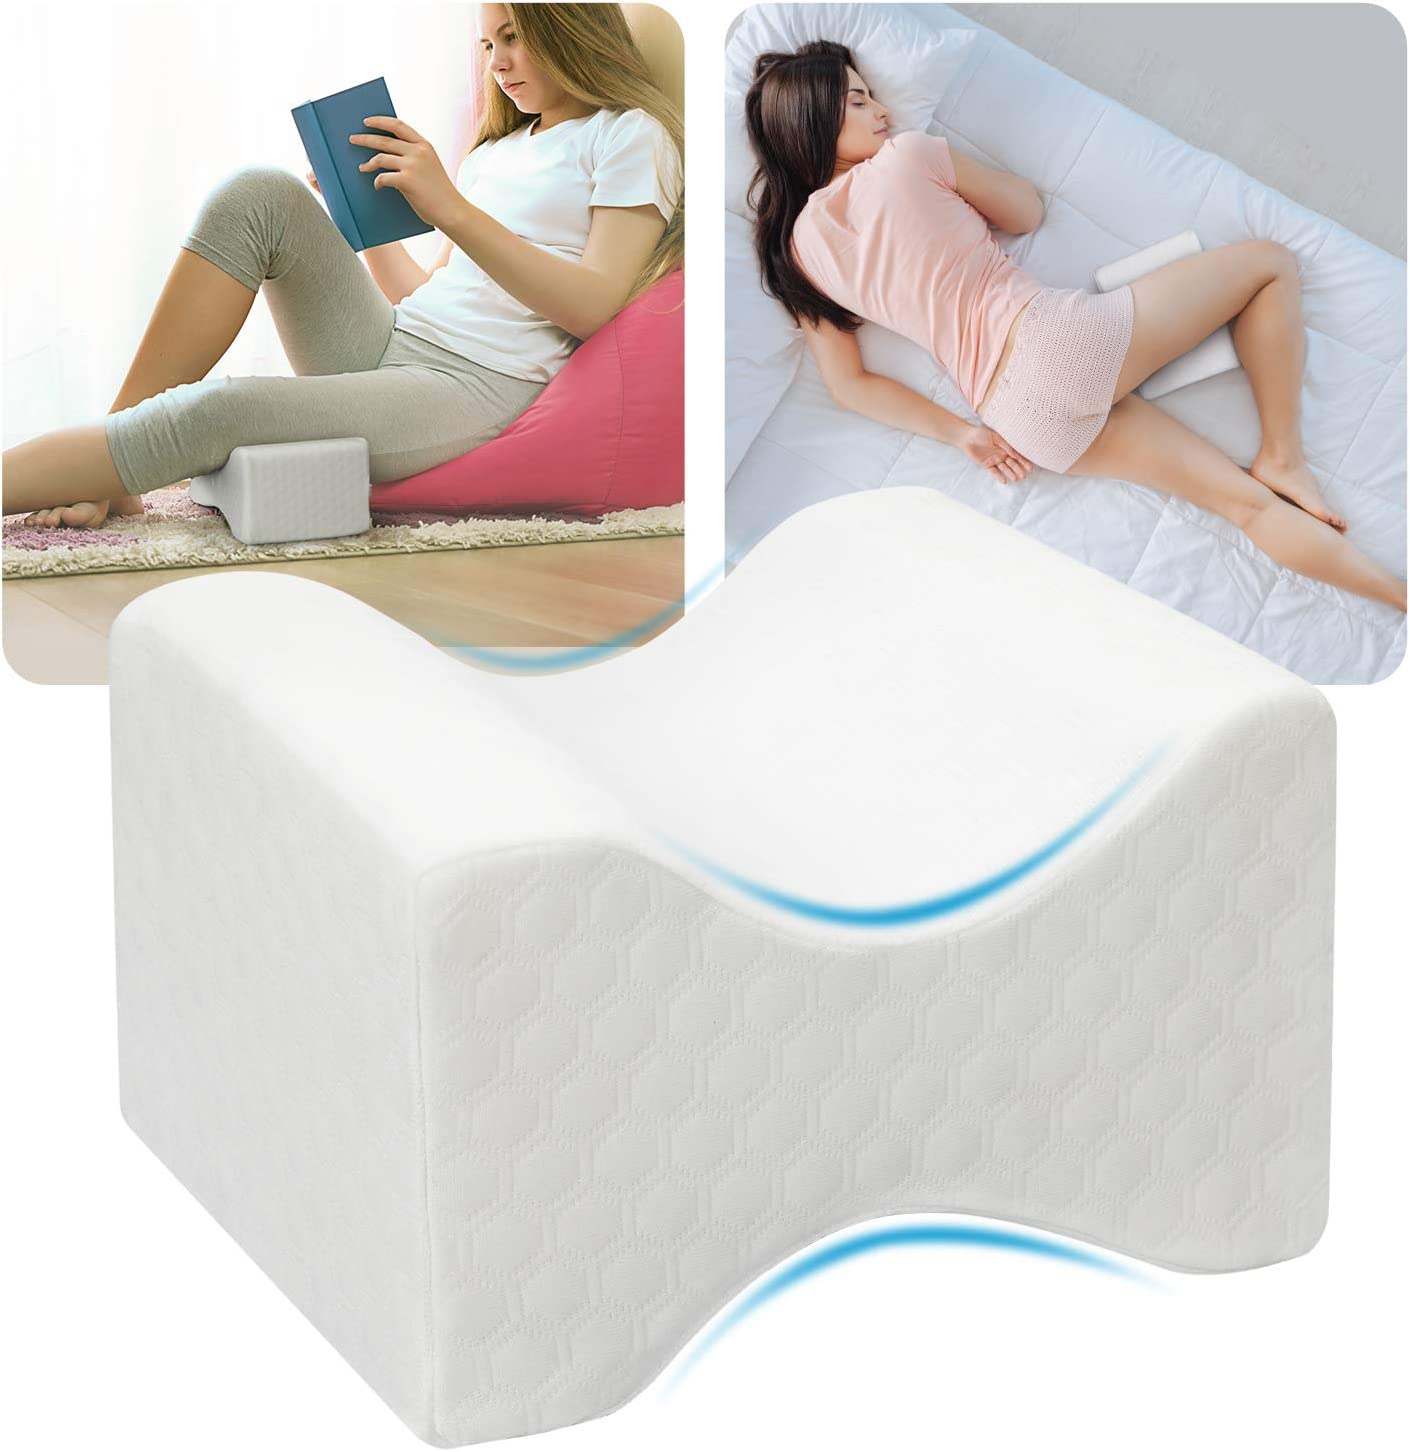 HUANUO Knee Pillow for Side Sleepers - Memory Foam Leg Pillow for Sleeping with Extra Cover, Cooling Gel for Sciatica Relief, Lower Back Pain, Leg Pain, Pregnancy, Joint Hip Pain,Wedge Contour